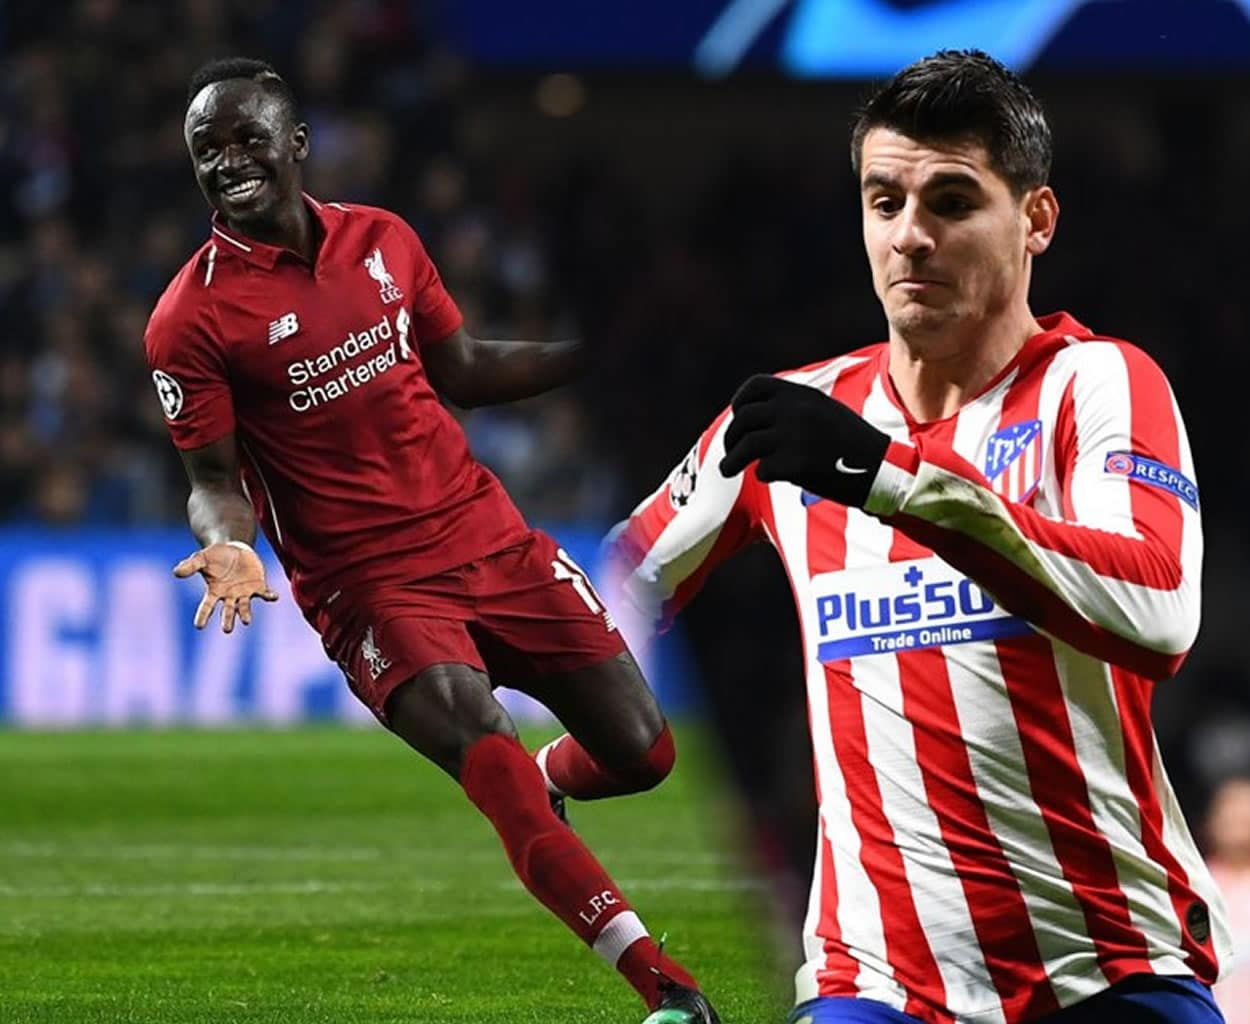 atletiko madritis liverpoul live streaming champions league